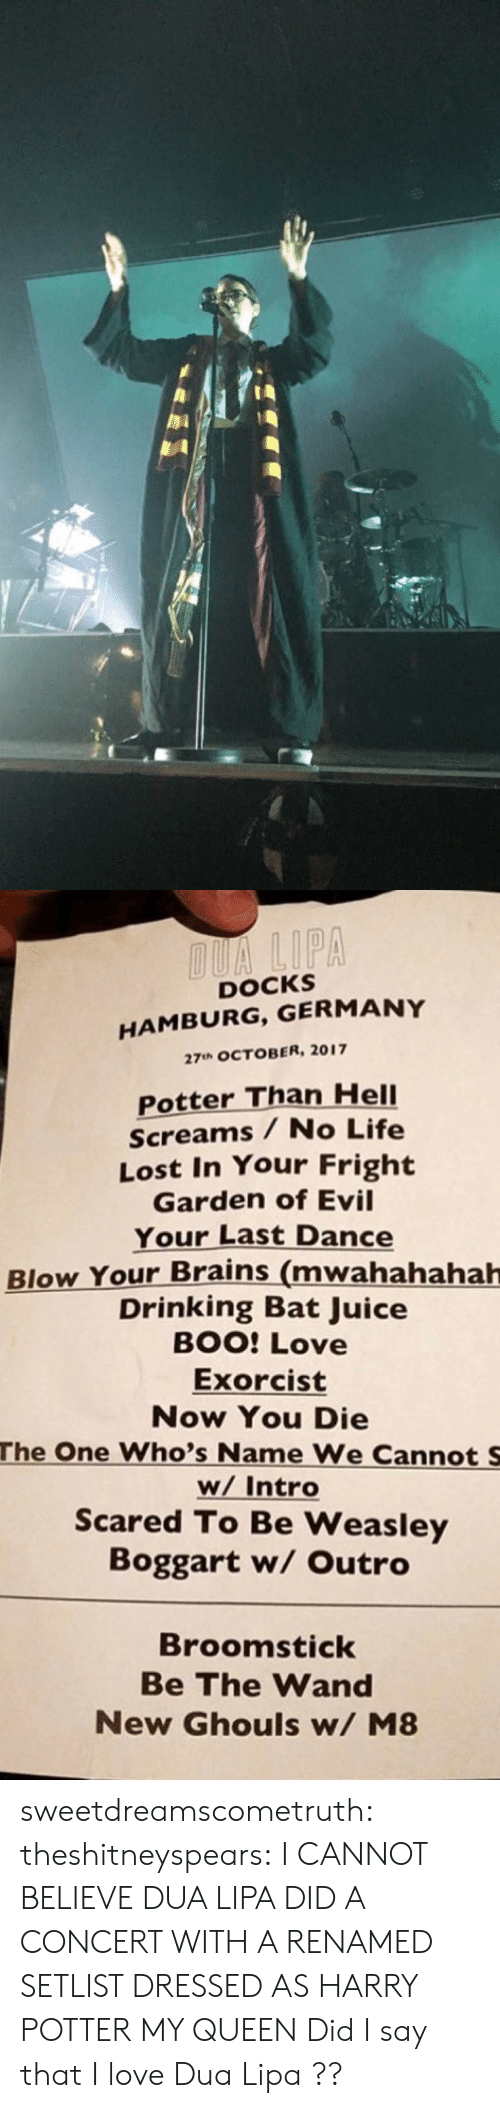 hamburg: DOCKS  HAMBURG, GERMANY  27uh OCTOBER, 2017  Potter Than HelI  Screams / No Life  Lost In Your Fright  Garden of Evil  Your Last Dance  Blow Your Brains (mwahahahah  Drinking Bat Juice  BOO: Love  Exorcist  Now You Die  The One Who's Name We Cannot S  w/ Intro  Scared To Be Weasley  Boggart w/ Outro  Broomstick  Be The Wand  New Ghouls w/ M8 sweetdreamscometruth: theshitneyspears:  I CANNOT BELIEVE DUA LIPA DID A CONCERT WITH A RENAMED SETLIST DRESSED AS HARRY POTTER MY QUEEN  Did I say that I love Dua Lipa ??